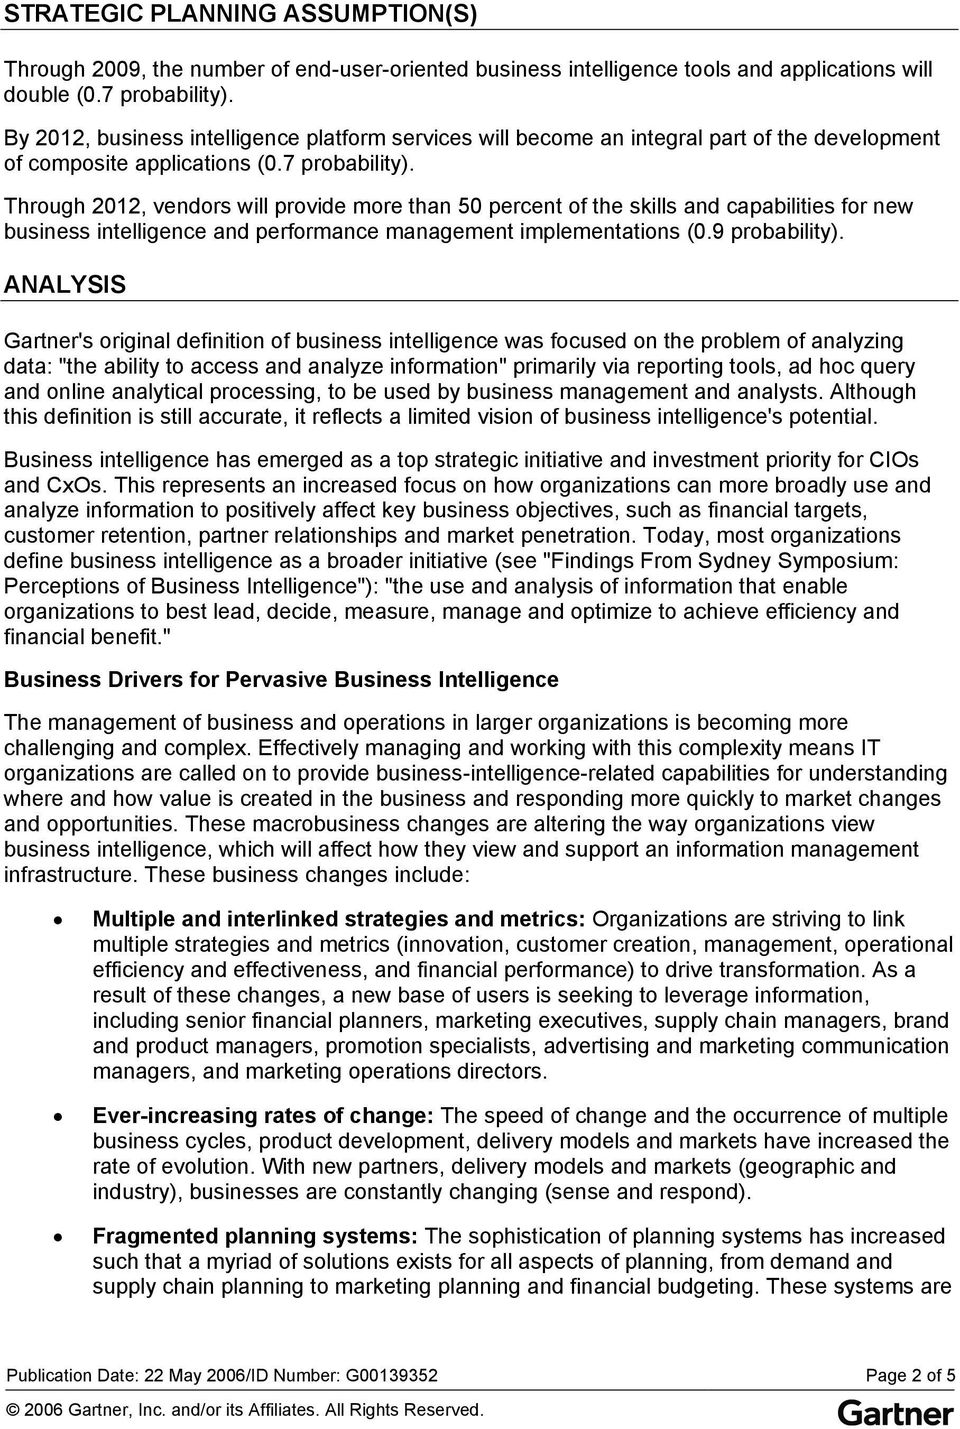 Through 2012, vendors will provide more than 50 percent of the skills and capabilities for new business intelligence and performance management implementations (0.9 probability).